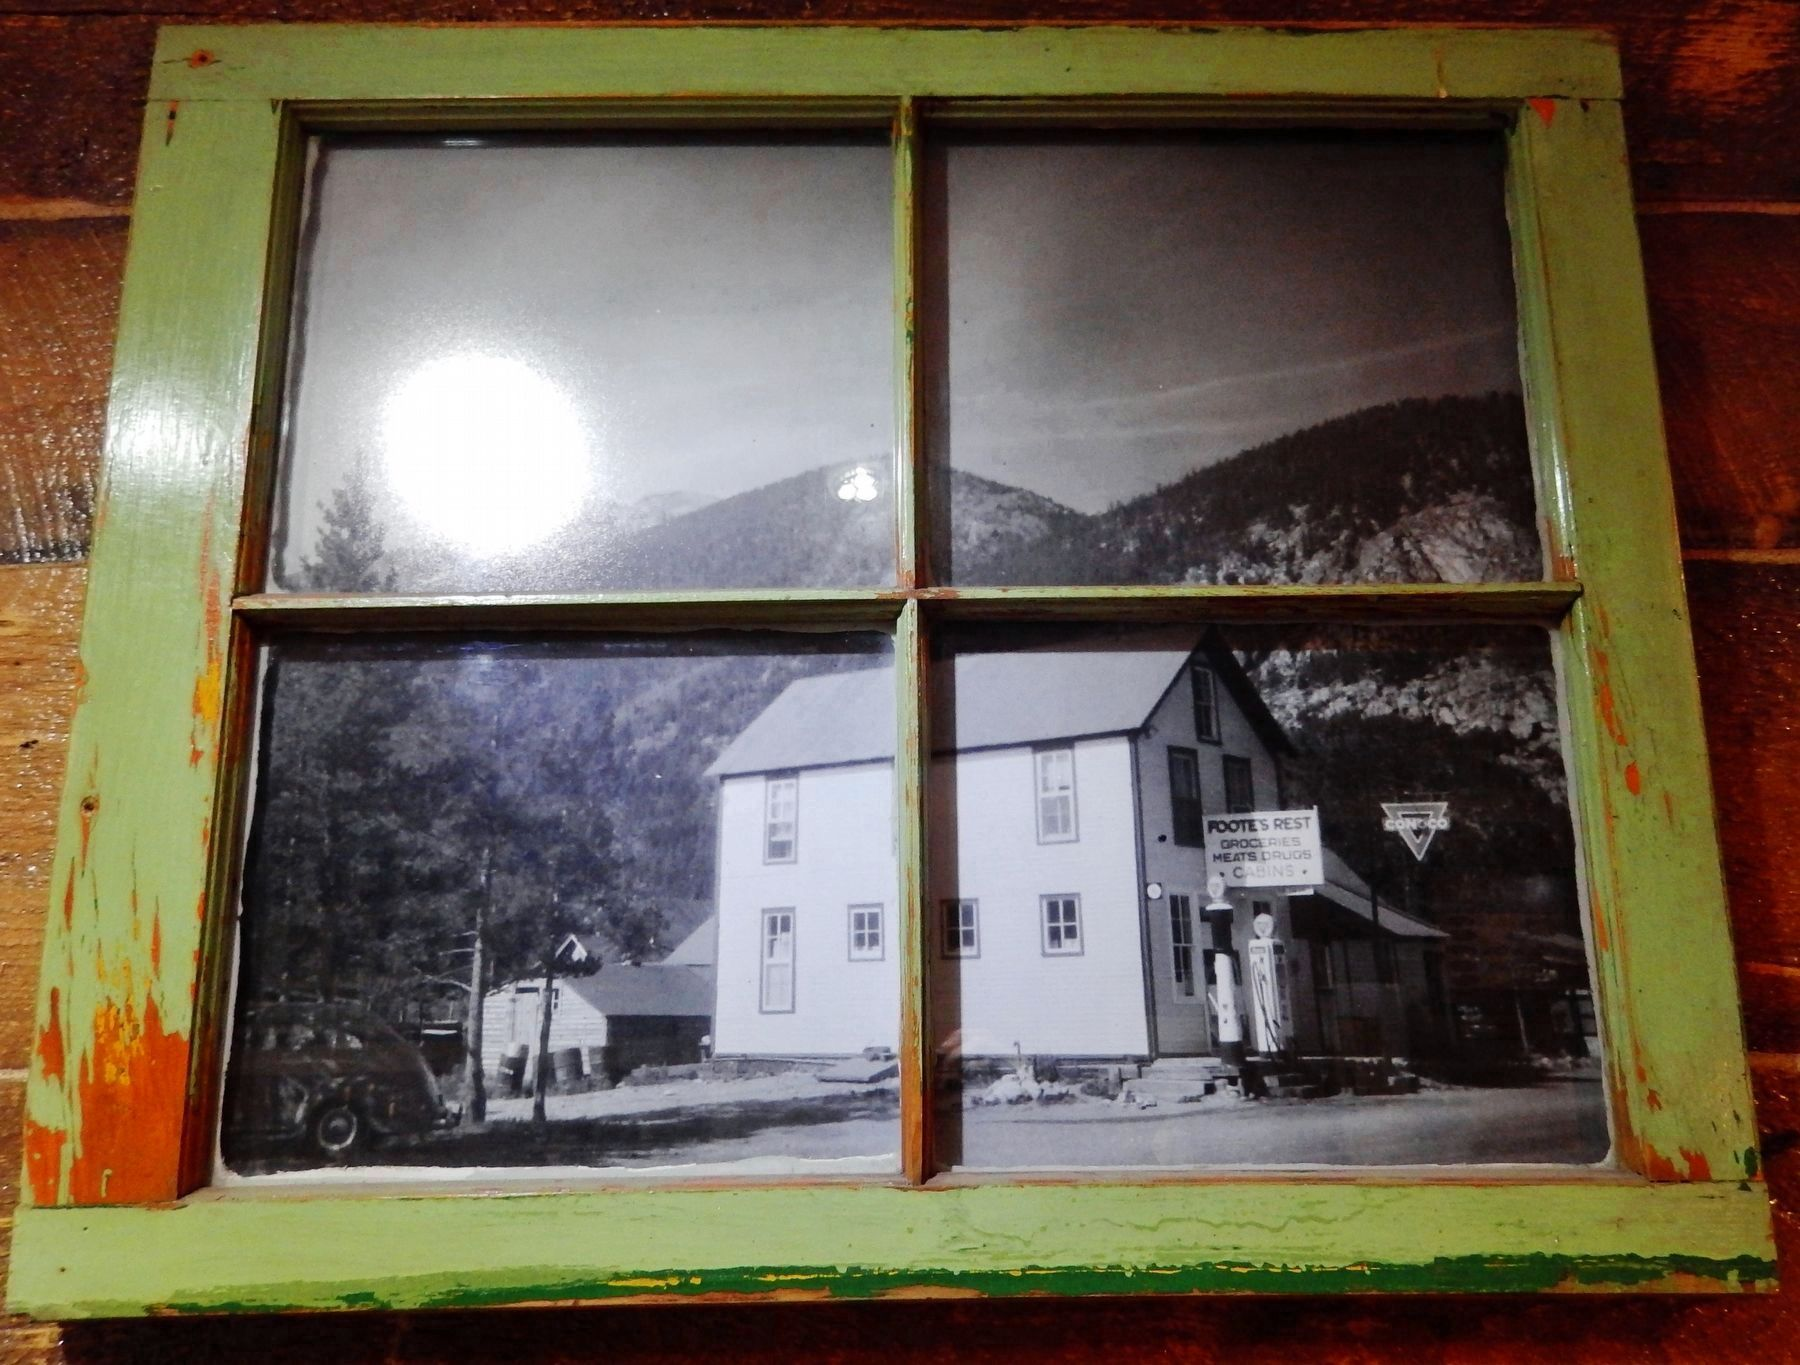 Photo of Foote's Rest circa 1950 (on display inside store) image. Click for full size.